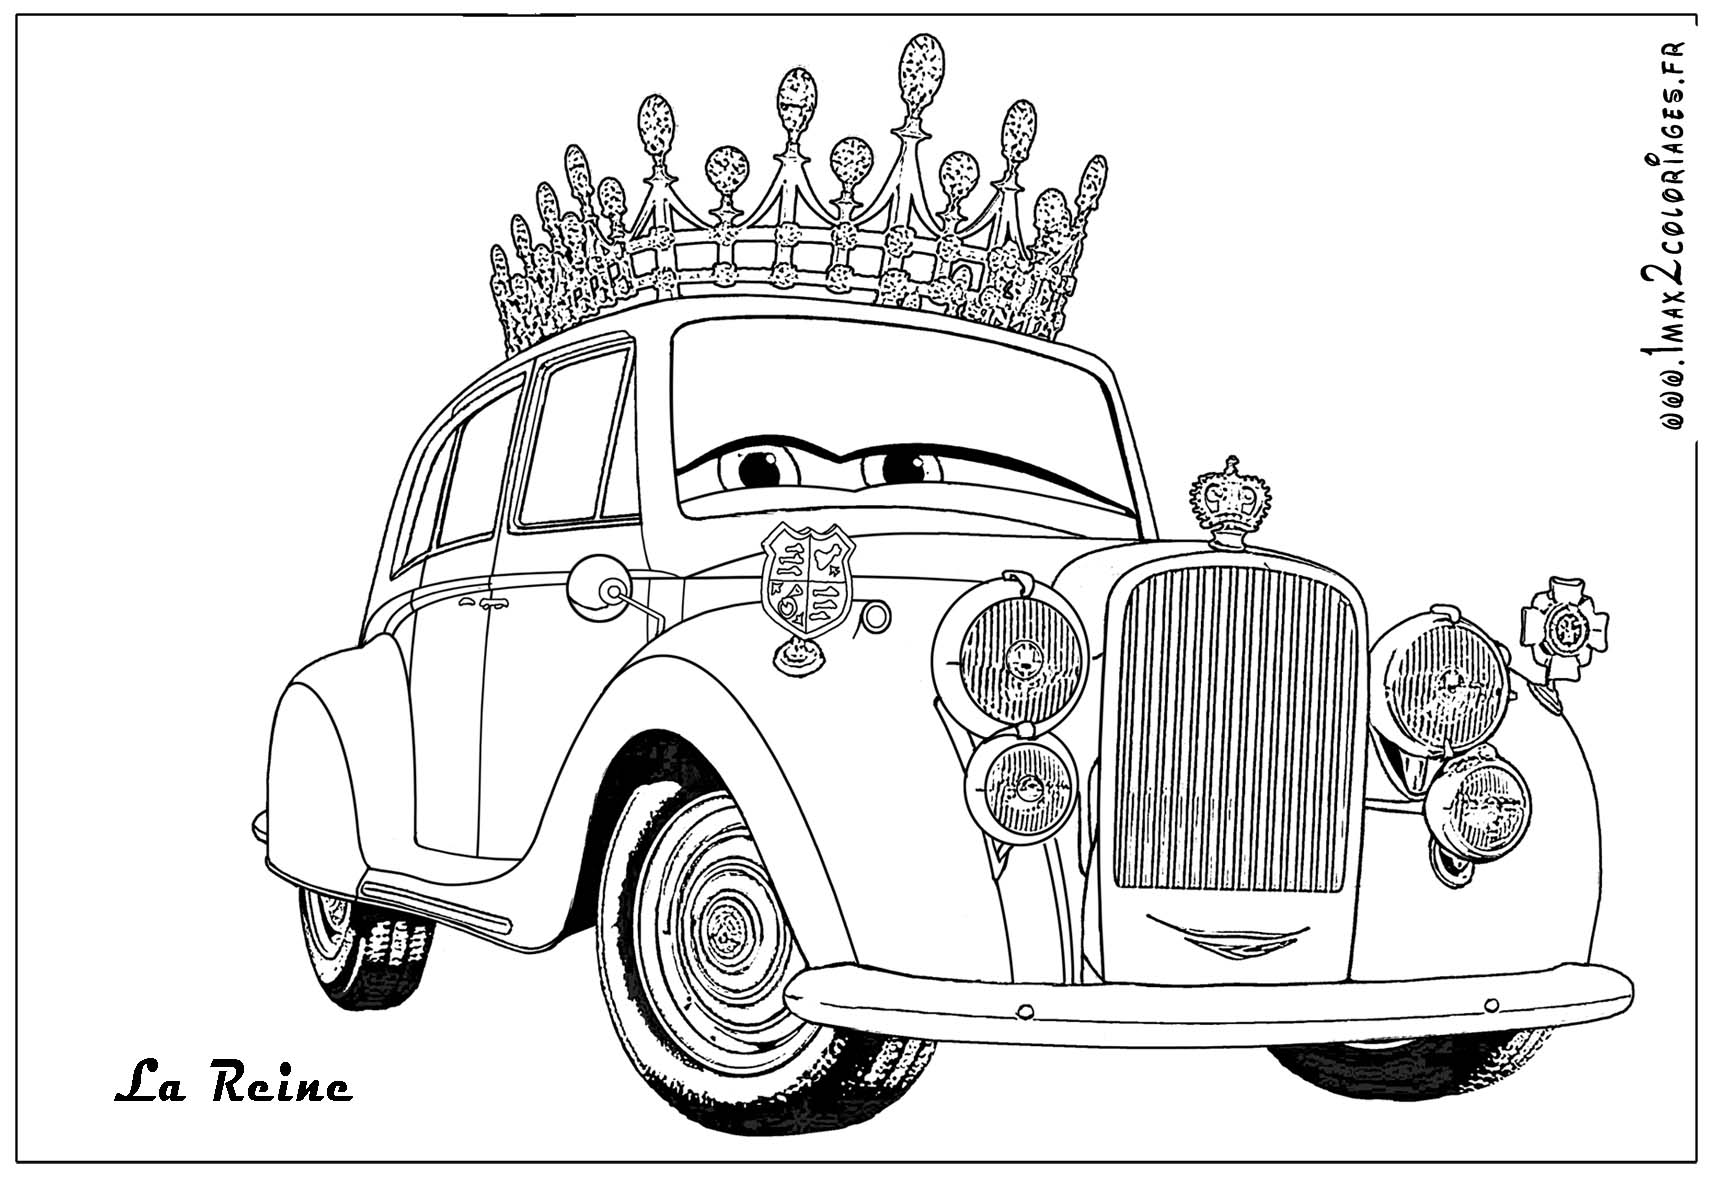 Simple Cars 2 coloring page to download for free